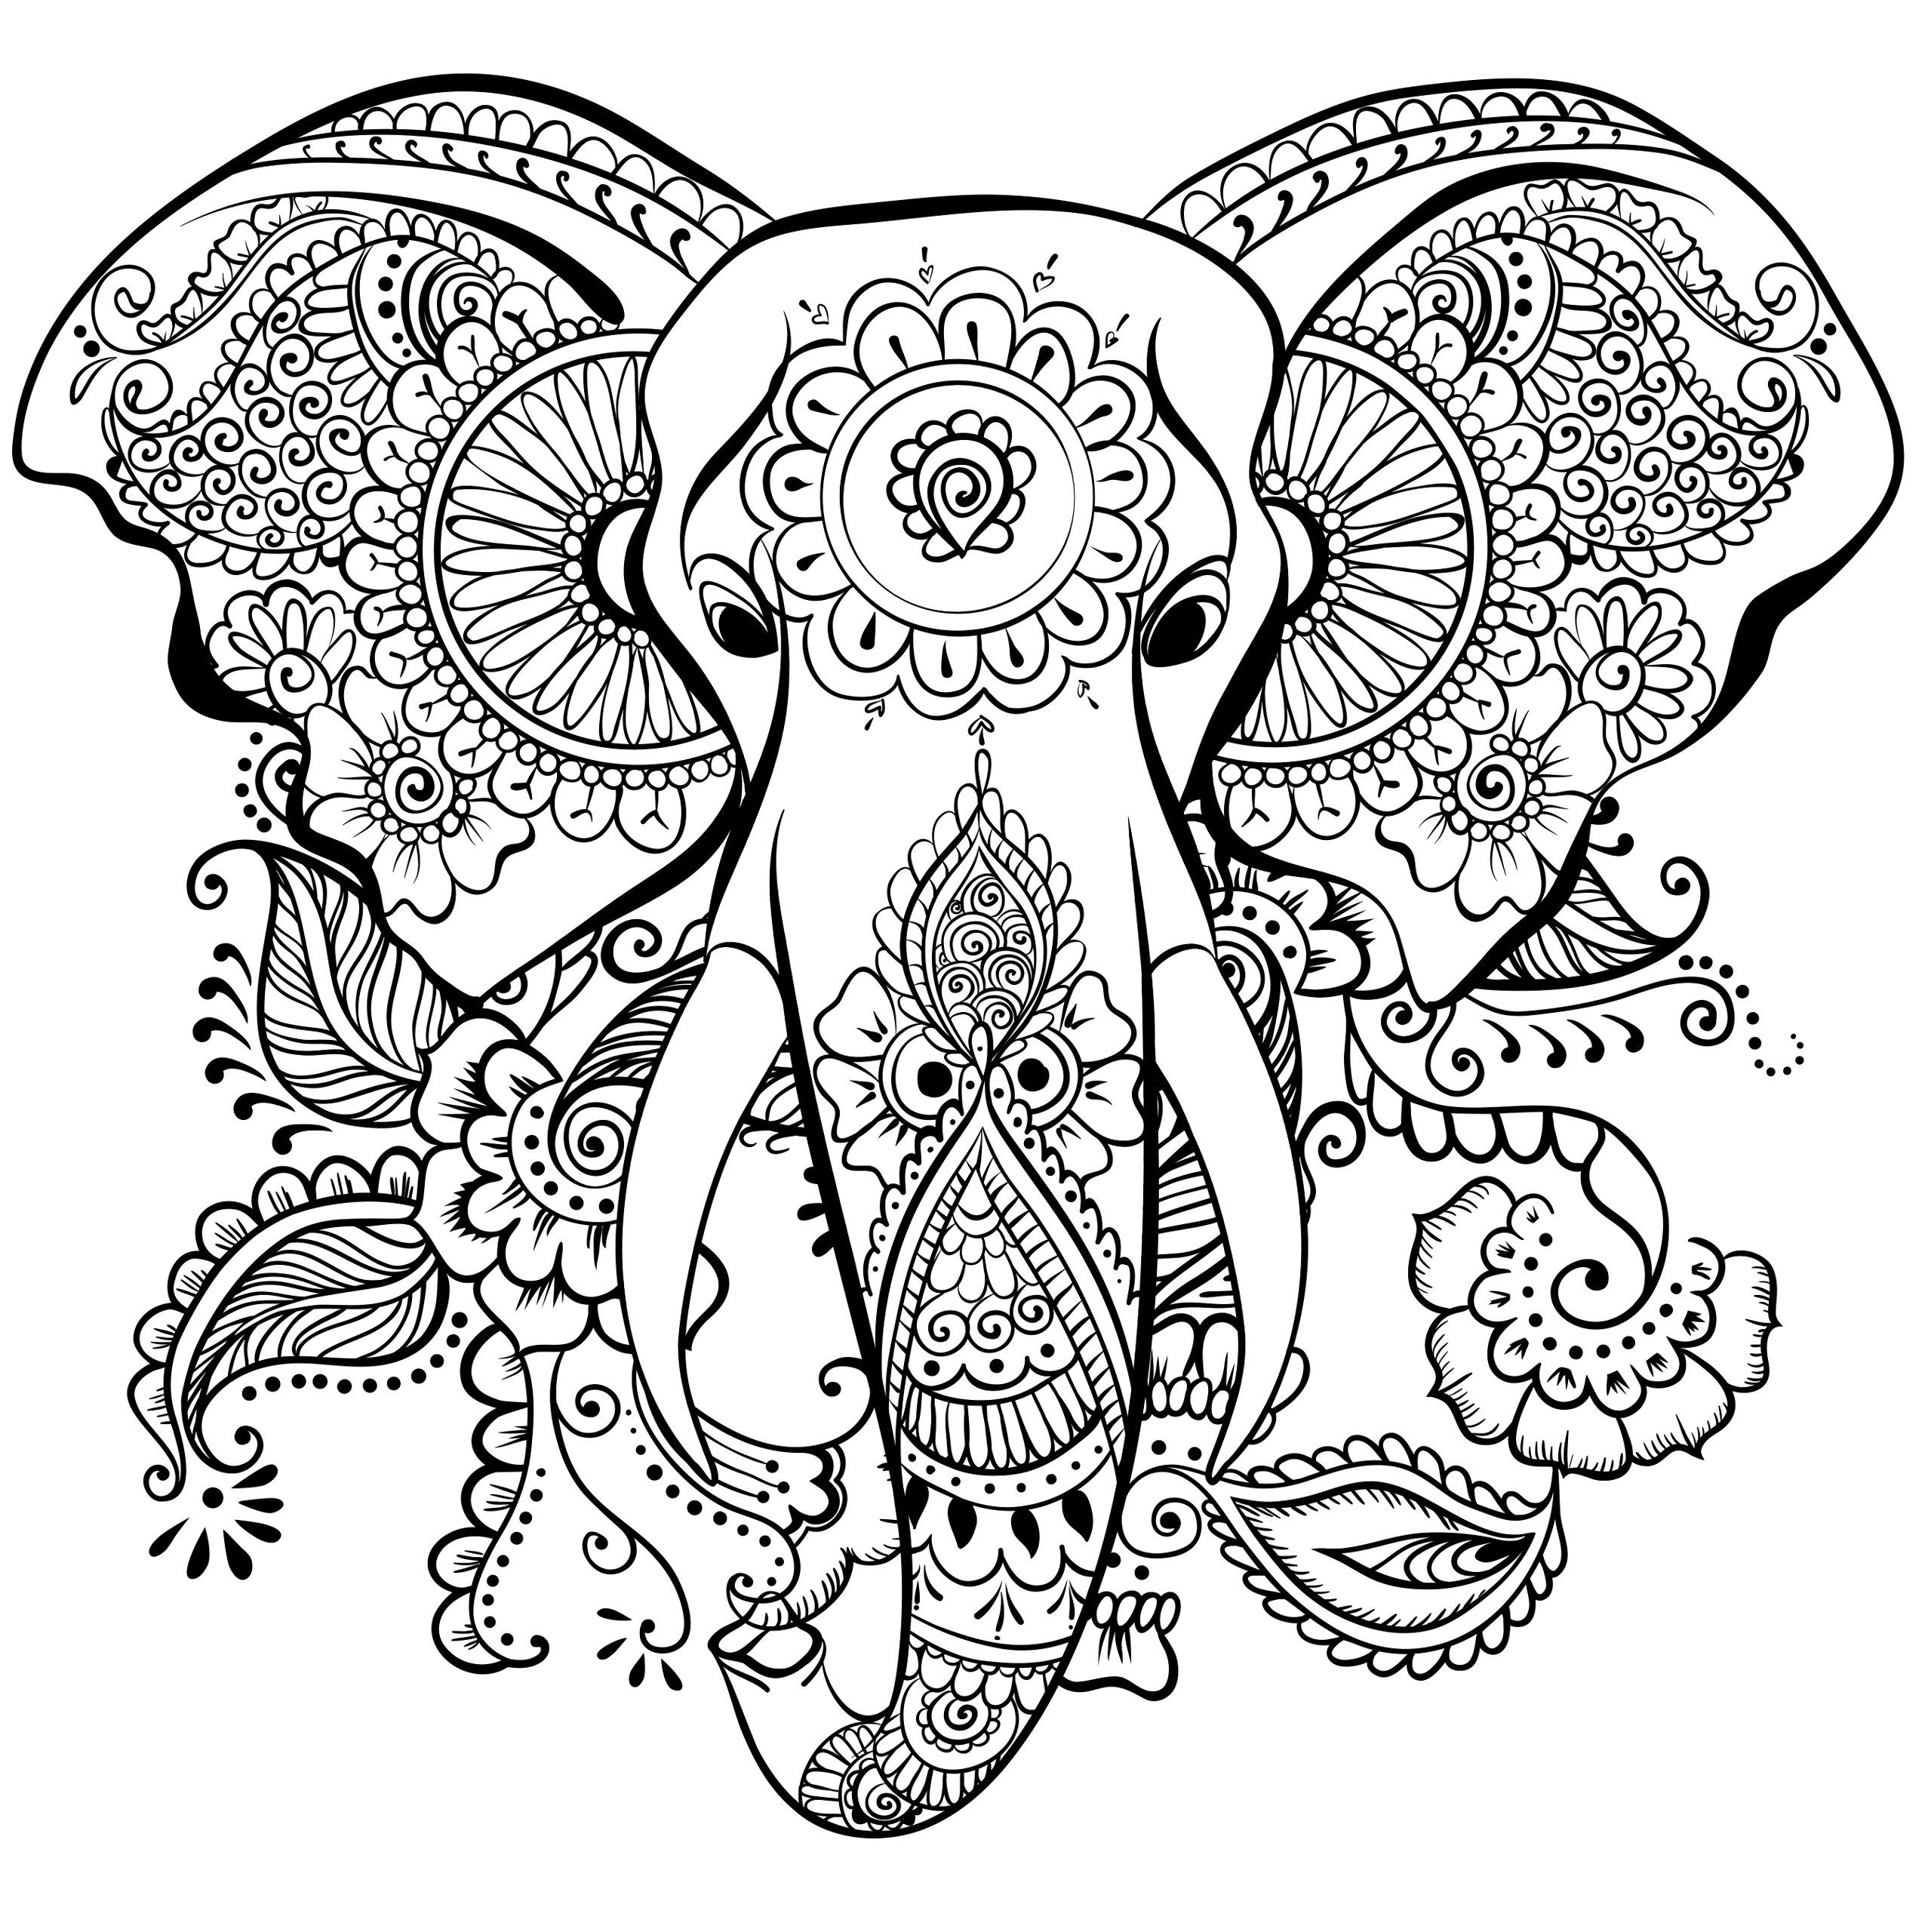 Wild At Heart Adult Coloring Book | Tattoo | Pinterest ...